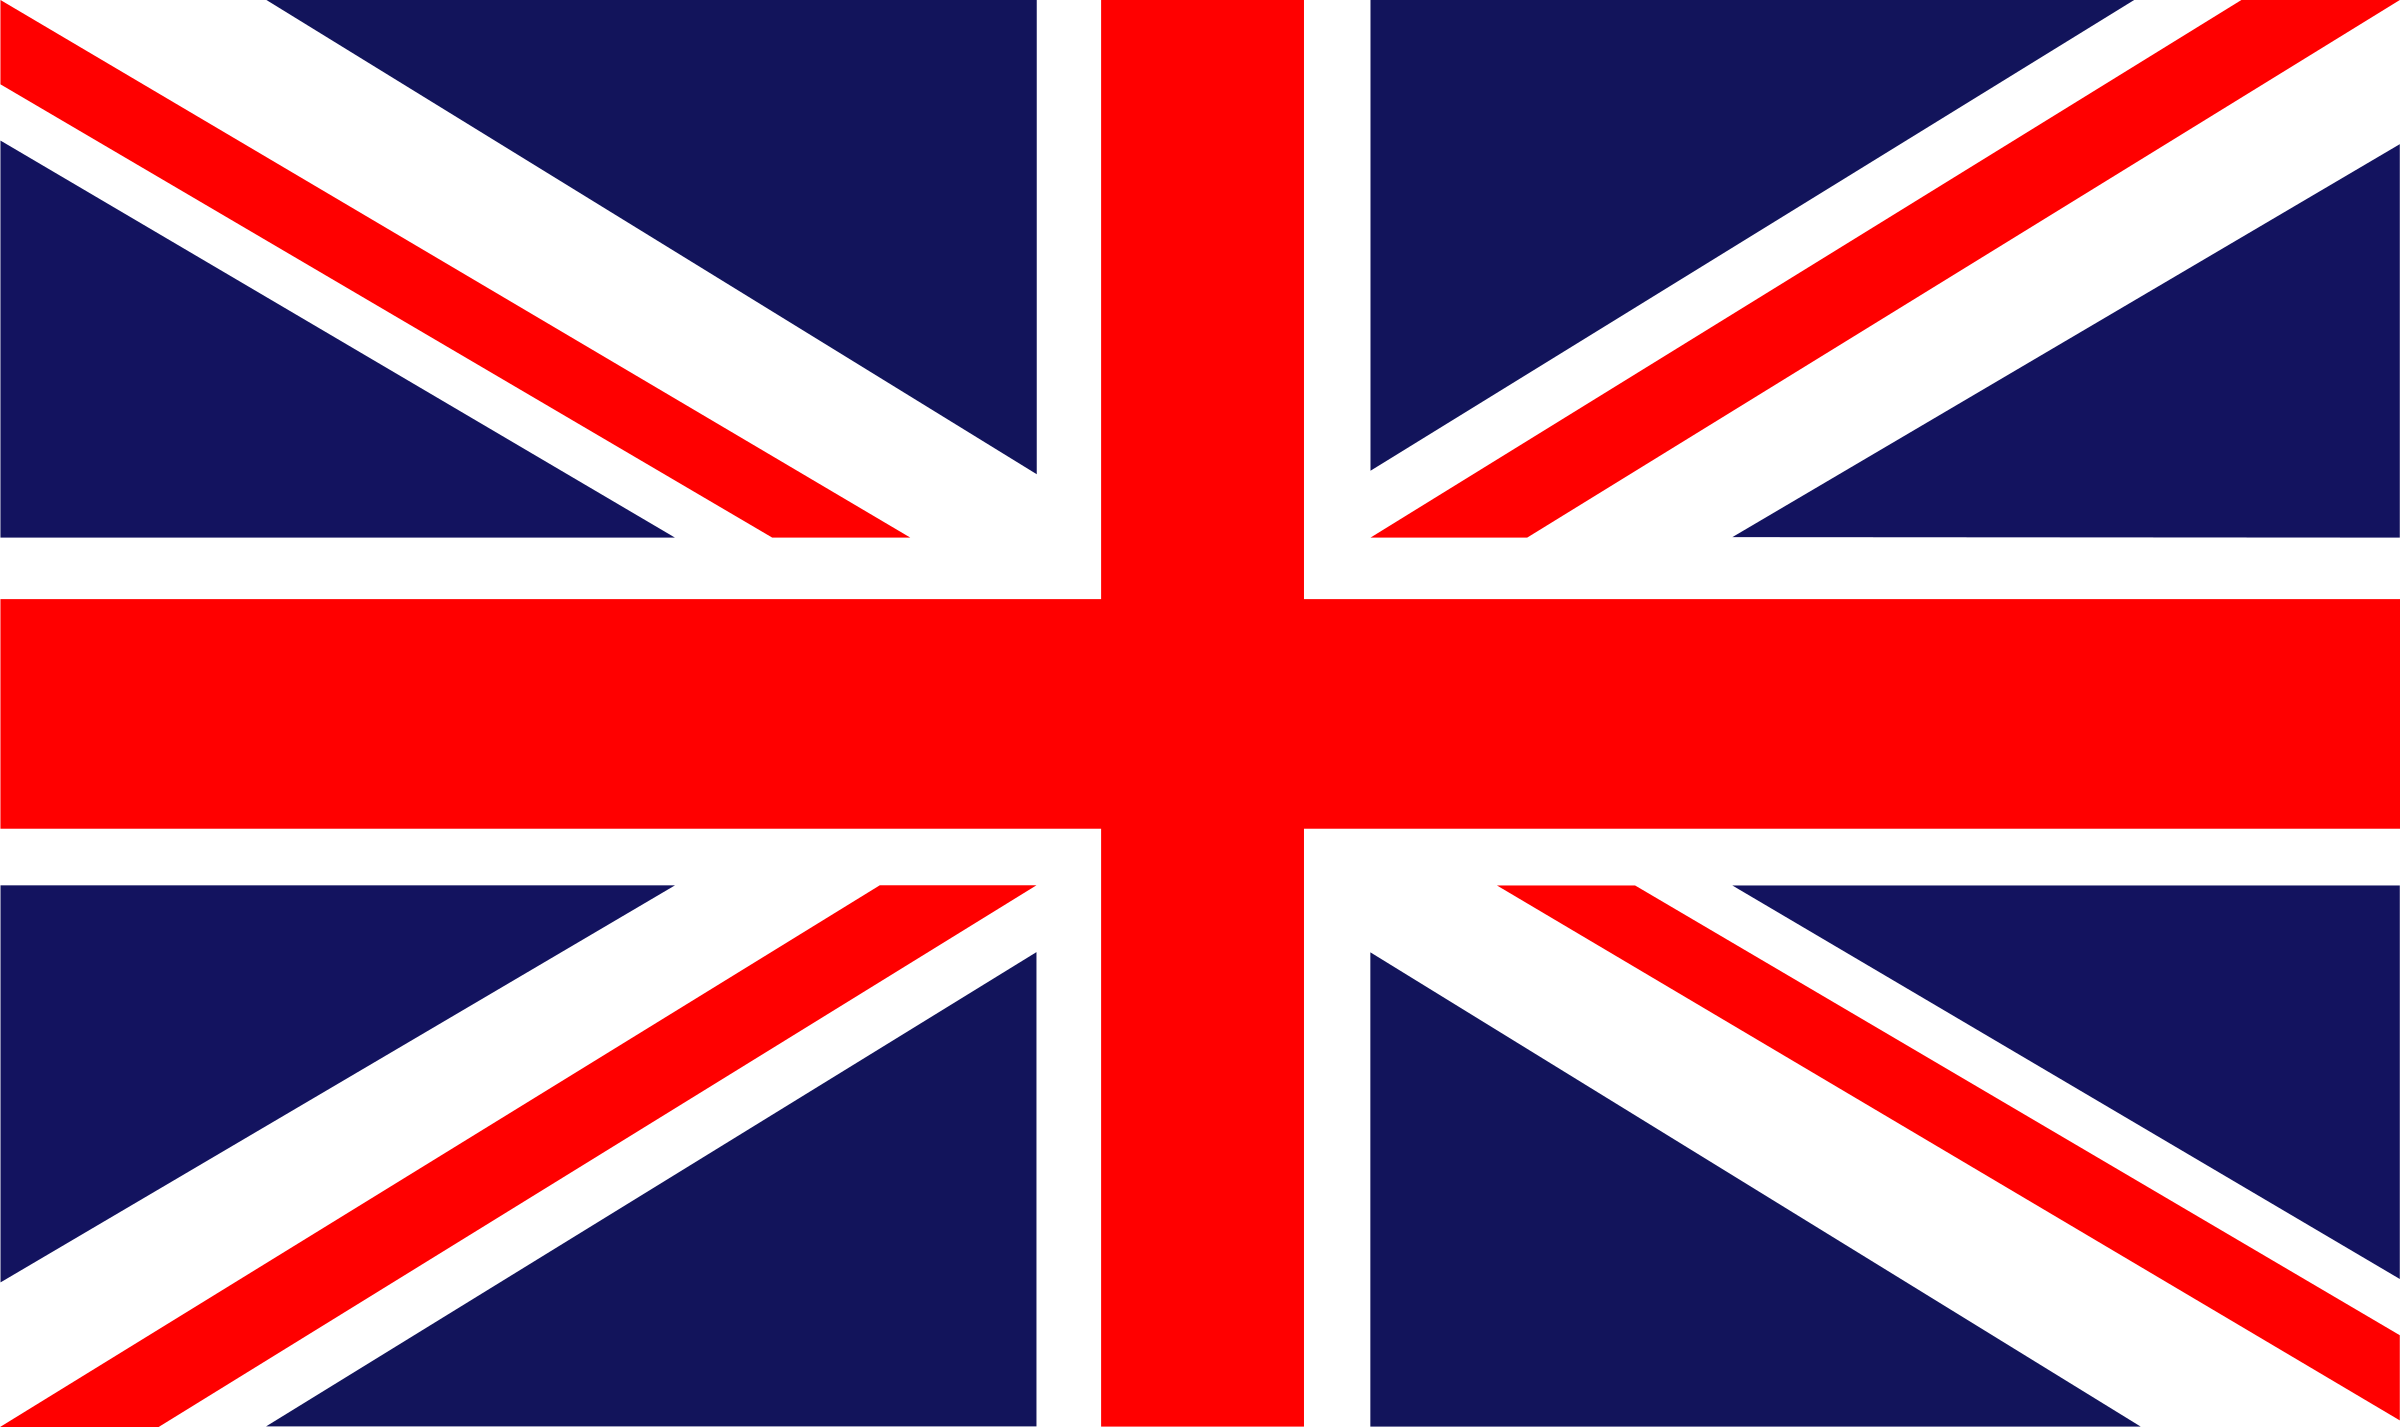 flag-of-britain